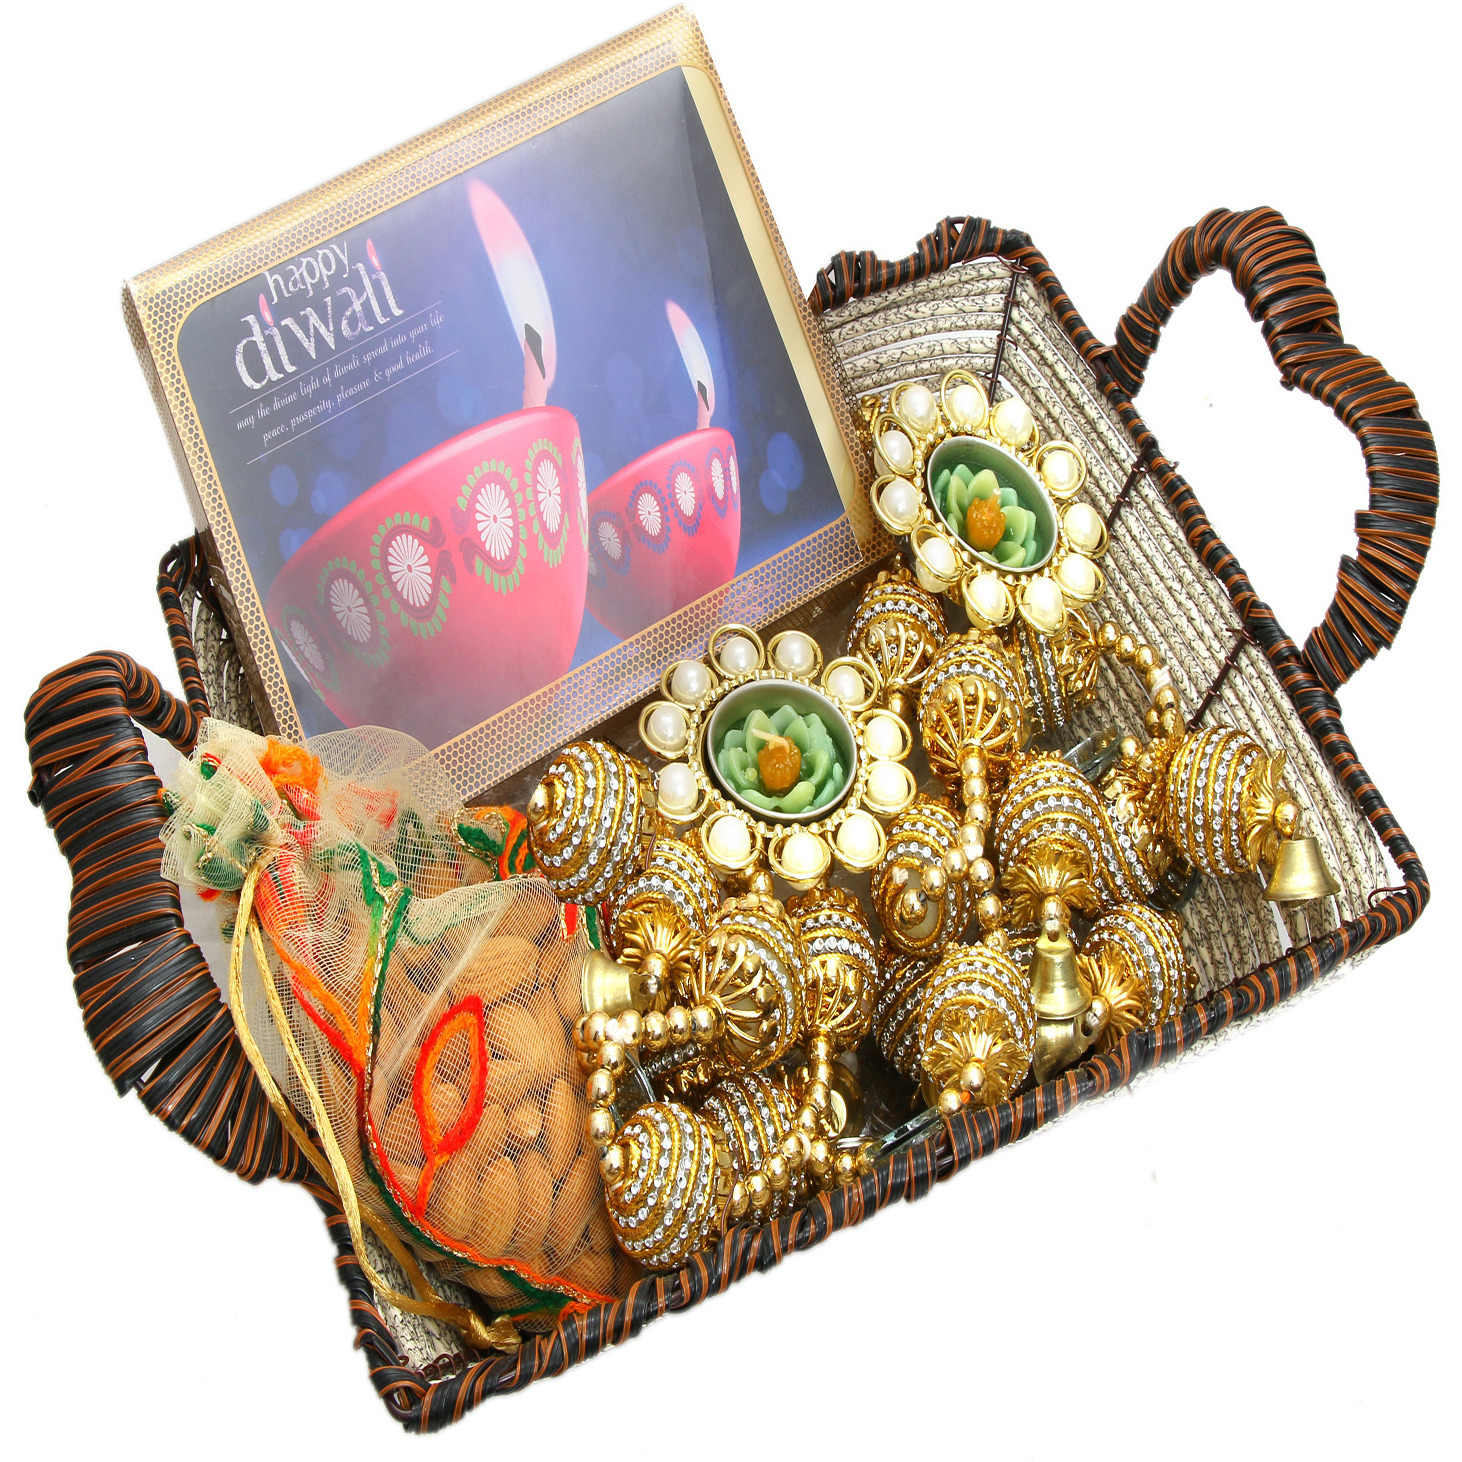 Hampers-Brown Cane Basket With Happy Diwali Chocolate Box, Almonds, Toran  And 2 T-Lites